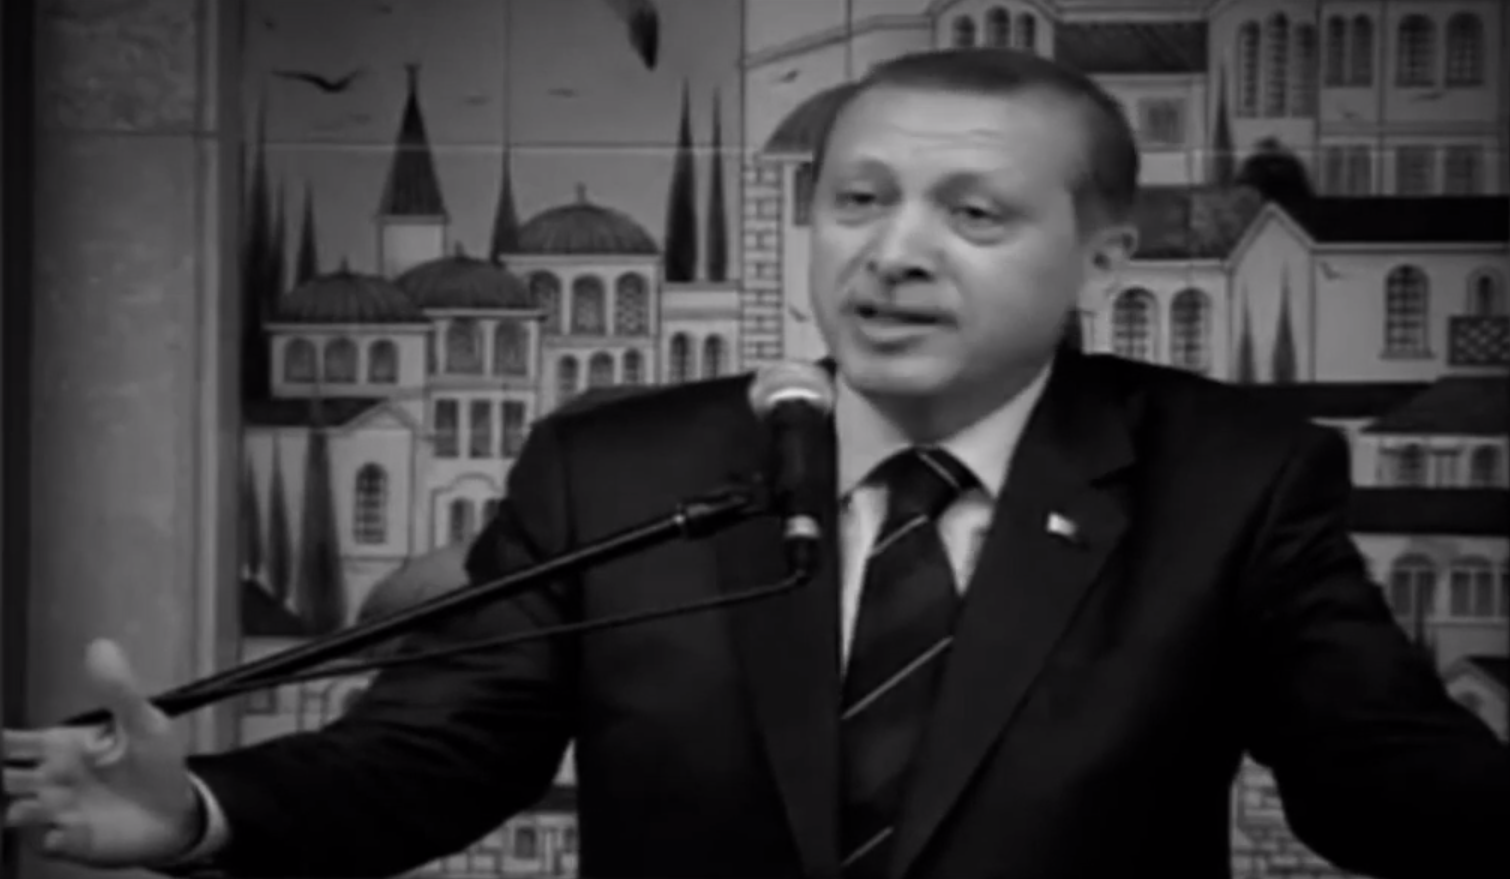 Turkey's prime minister has denounced Israel repeatedly. Screenshot from video uploaded by YouTube user Tamerscadence